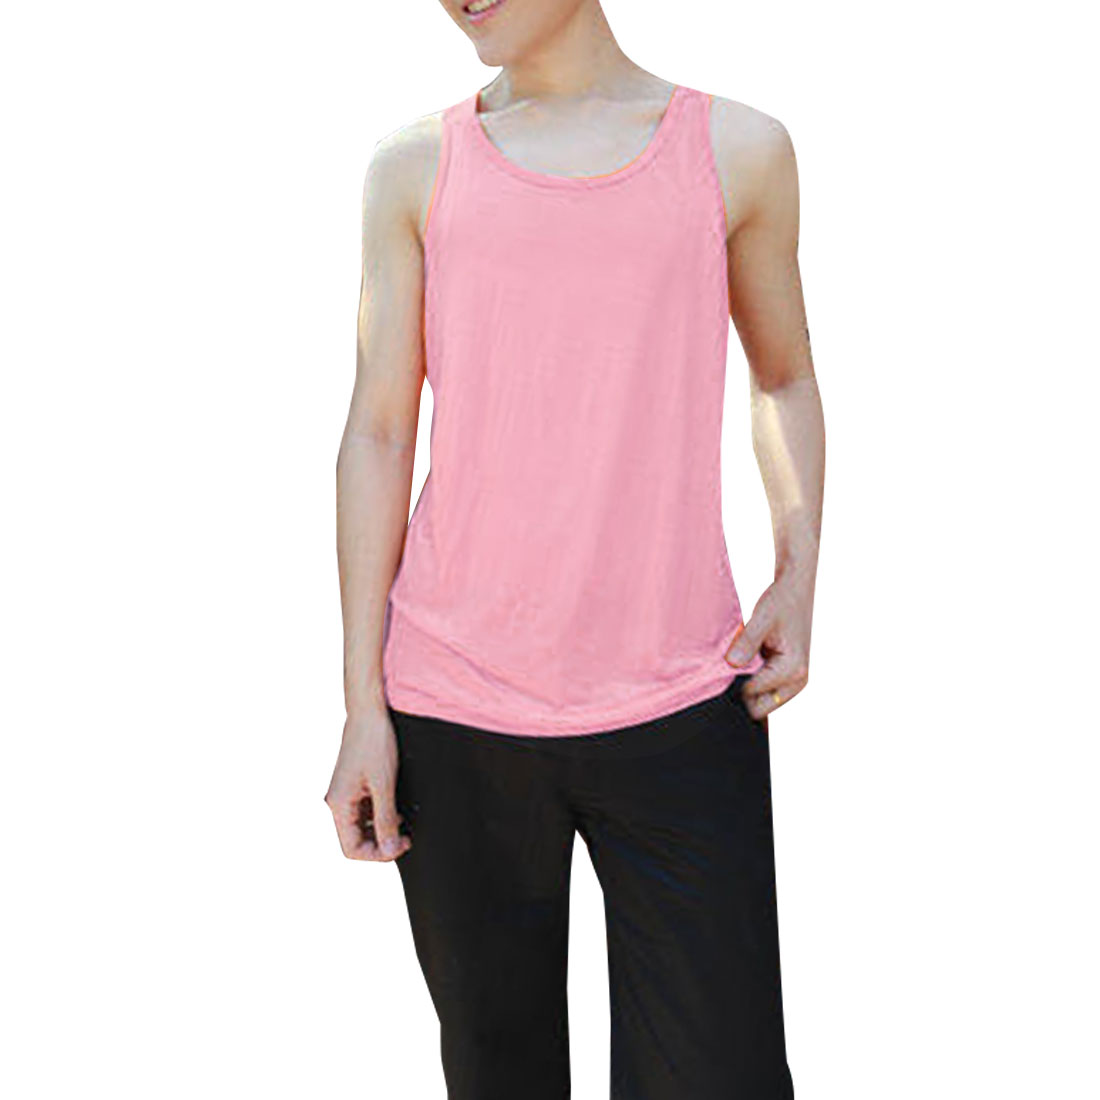 Man Sleeveless Round Neck Summer Stretchy Tank Tops Pink M